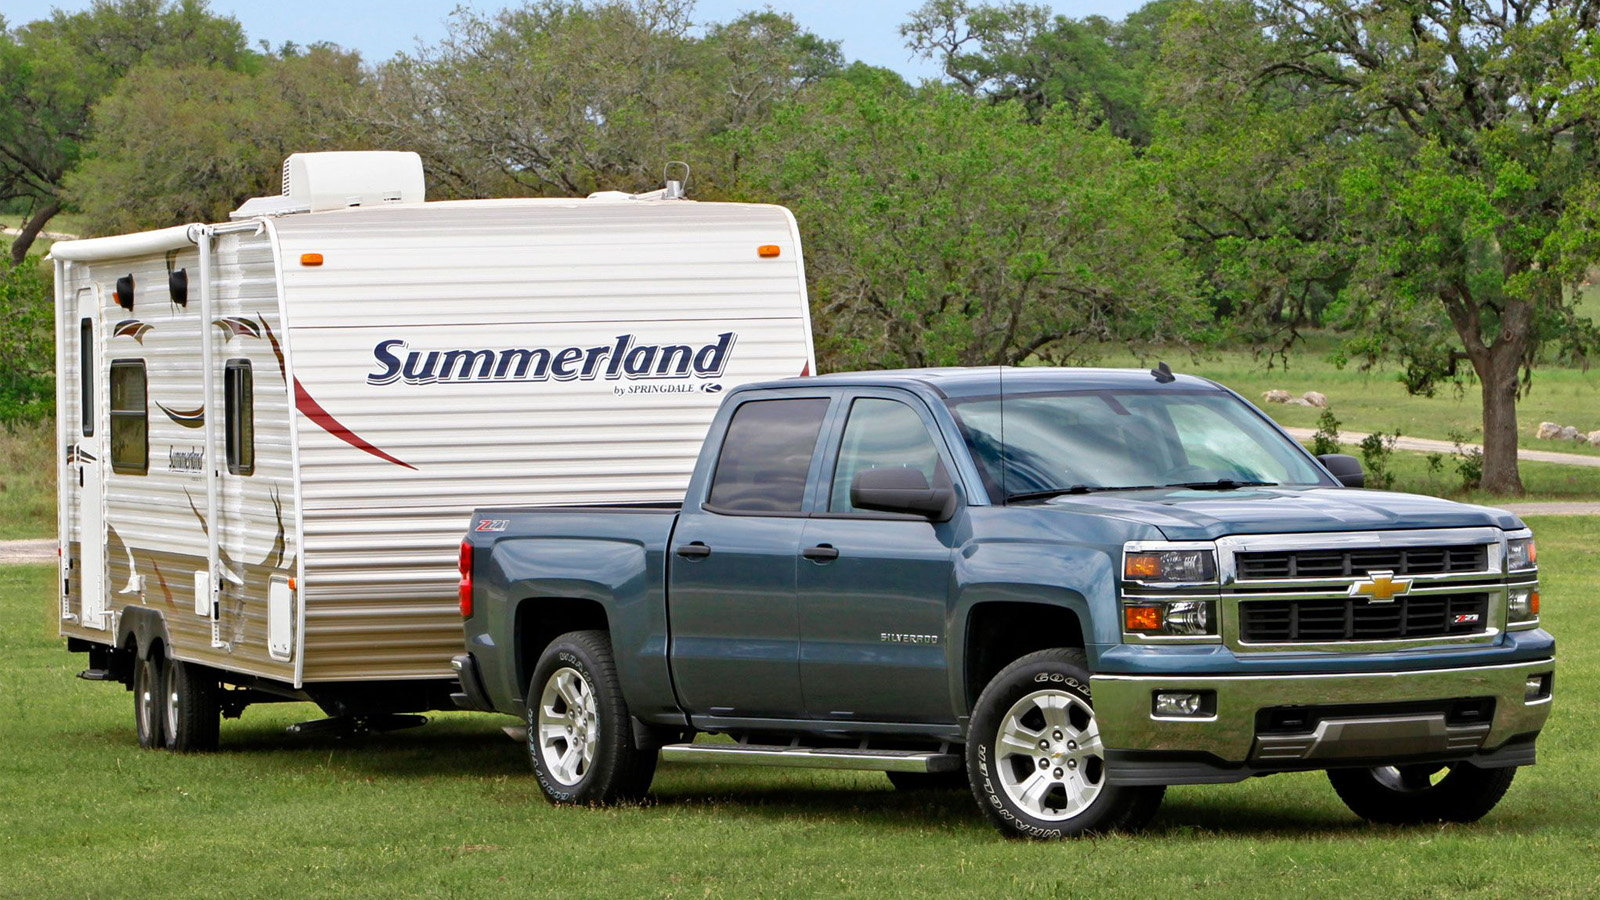 Silverado Towing and Hauling